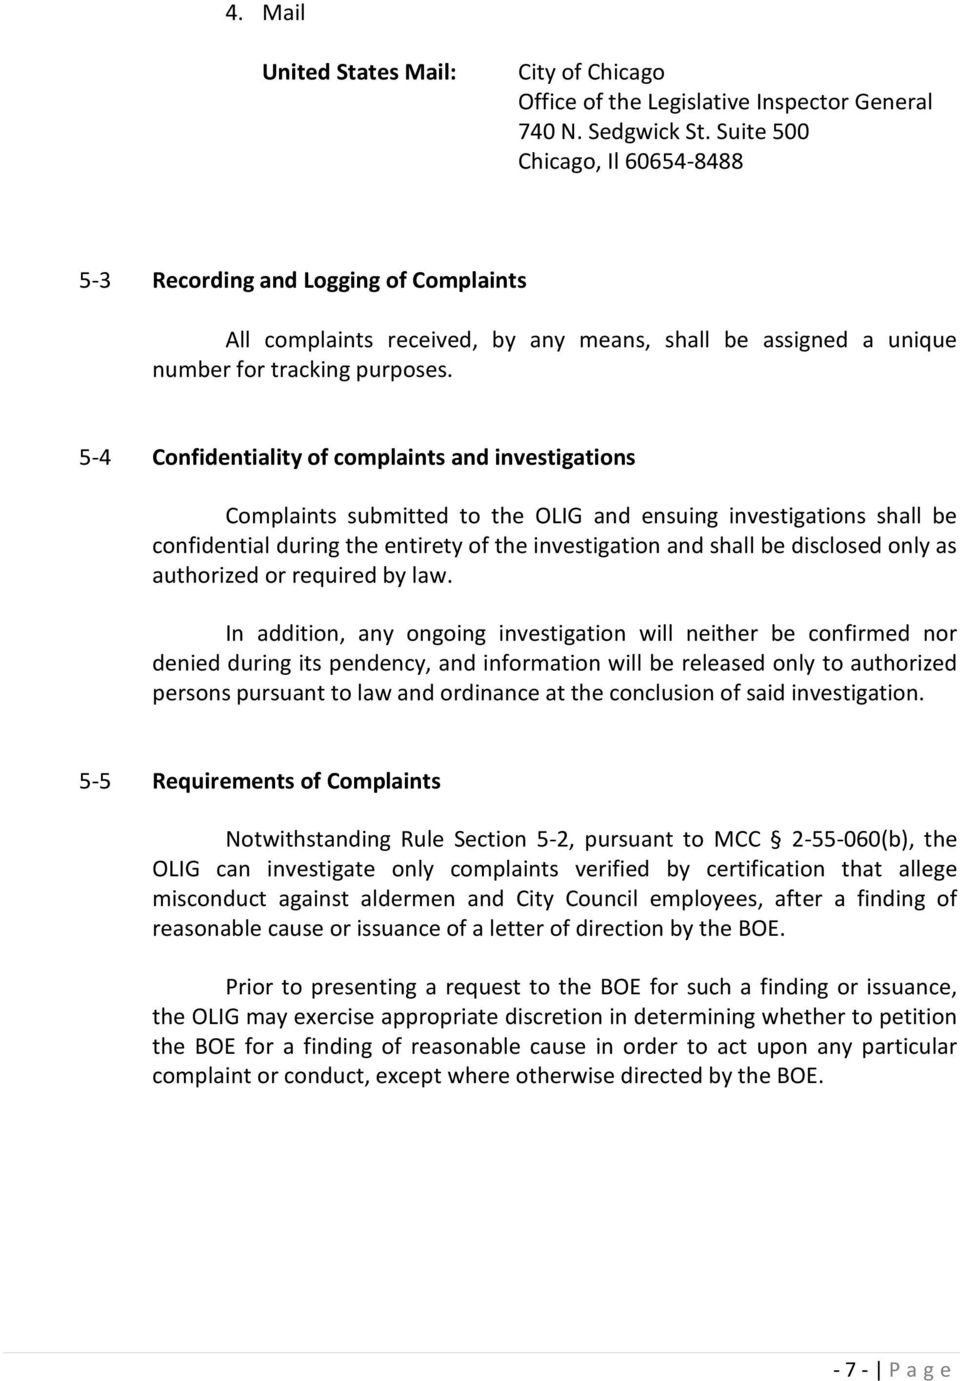 5-4 Confidentiality of complaints and investigations Complaints submitted to the OLIG and ensuing investigations shall be confidential during the entirety of the investigation and shall be disclosed